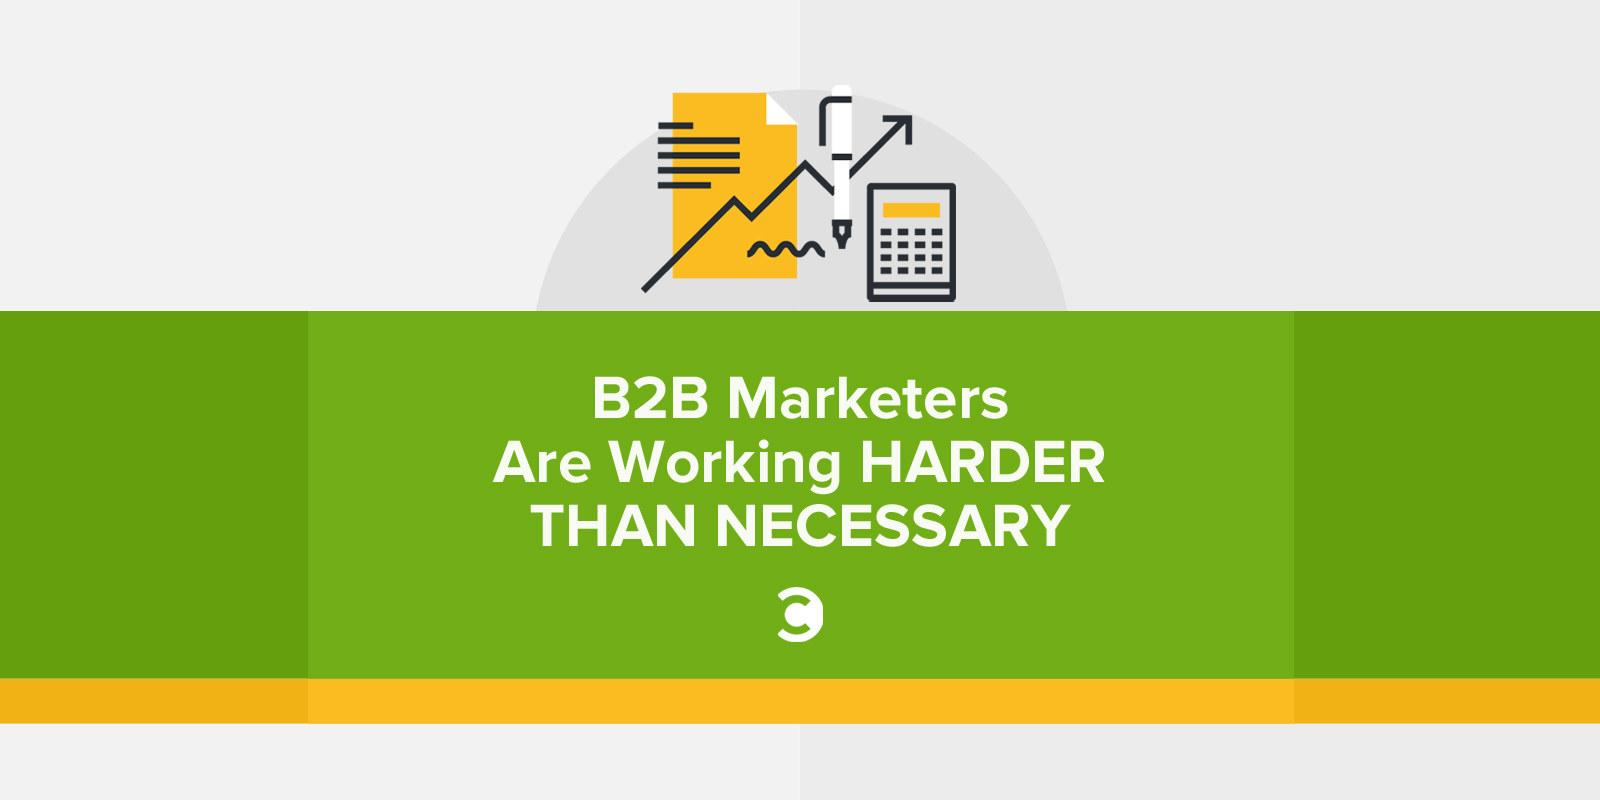 B2B Marketers Are Working Harder Than Necessary